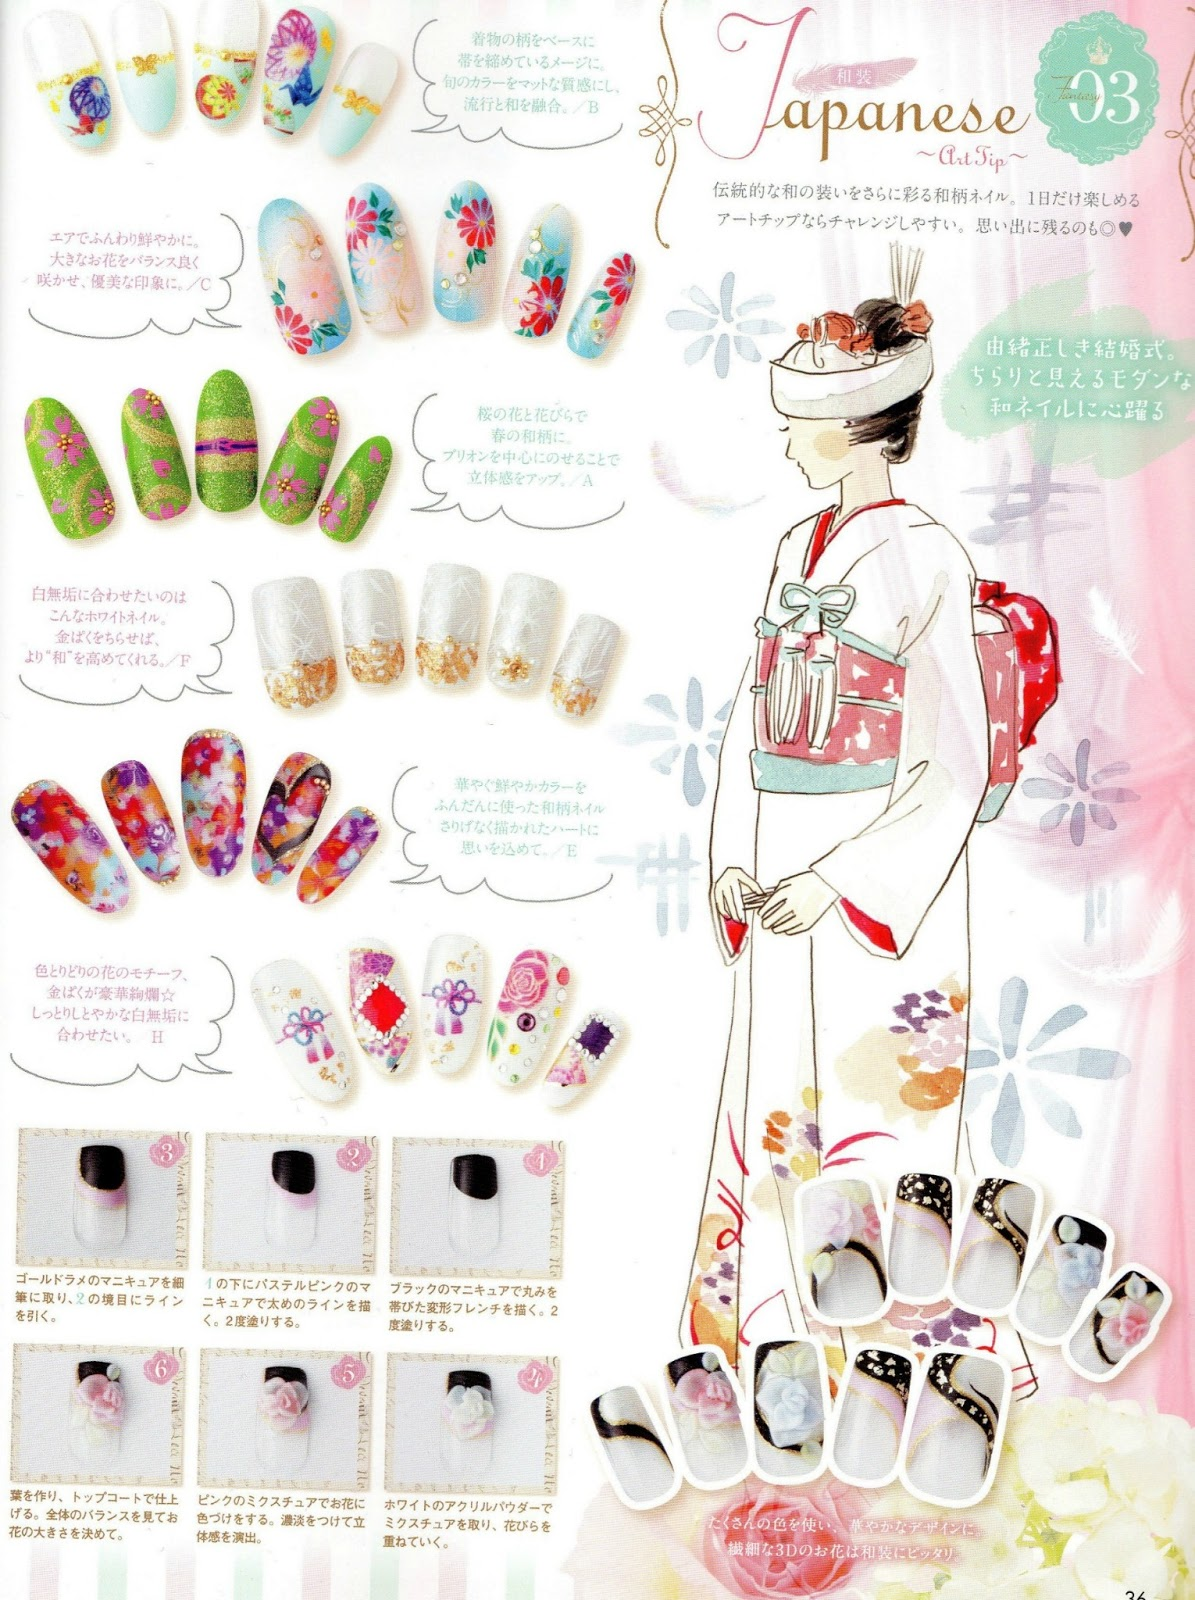 Japanese Nail Art Magazine Scans - Nails Gallery